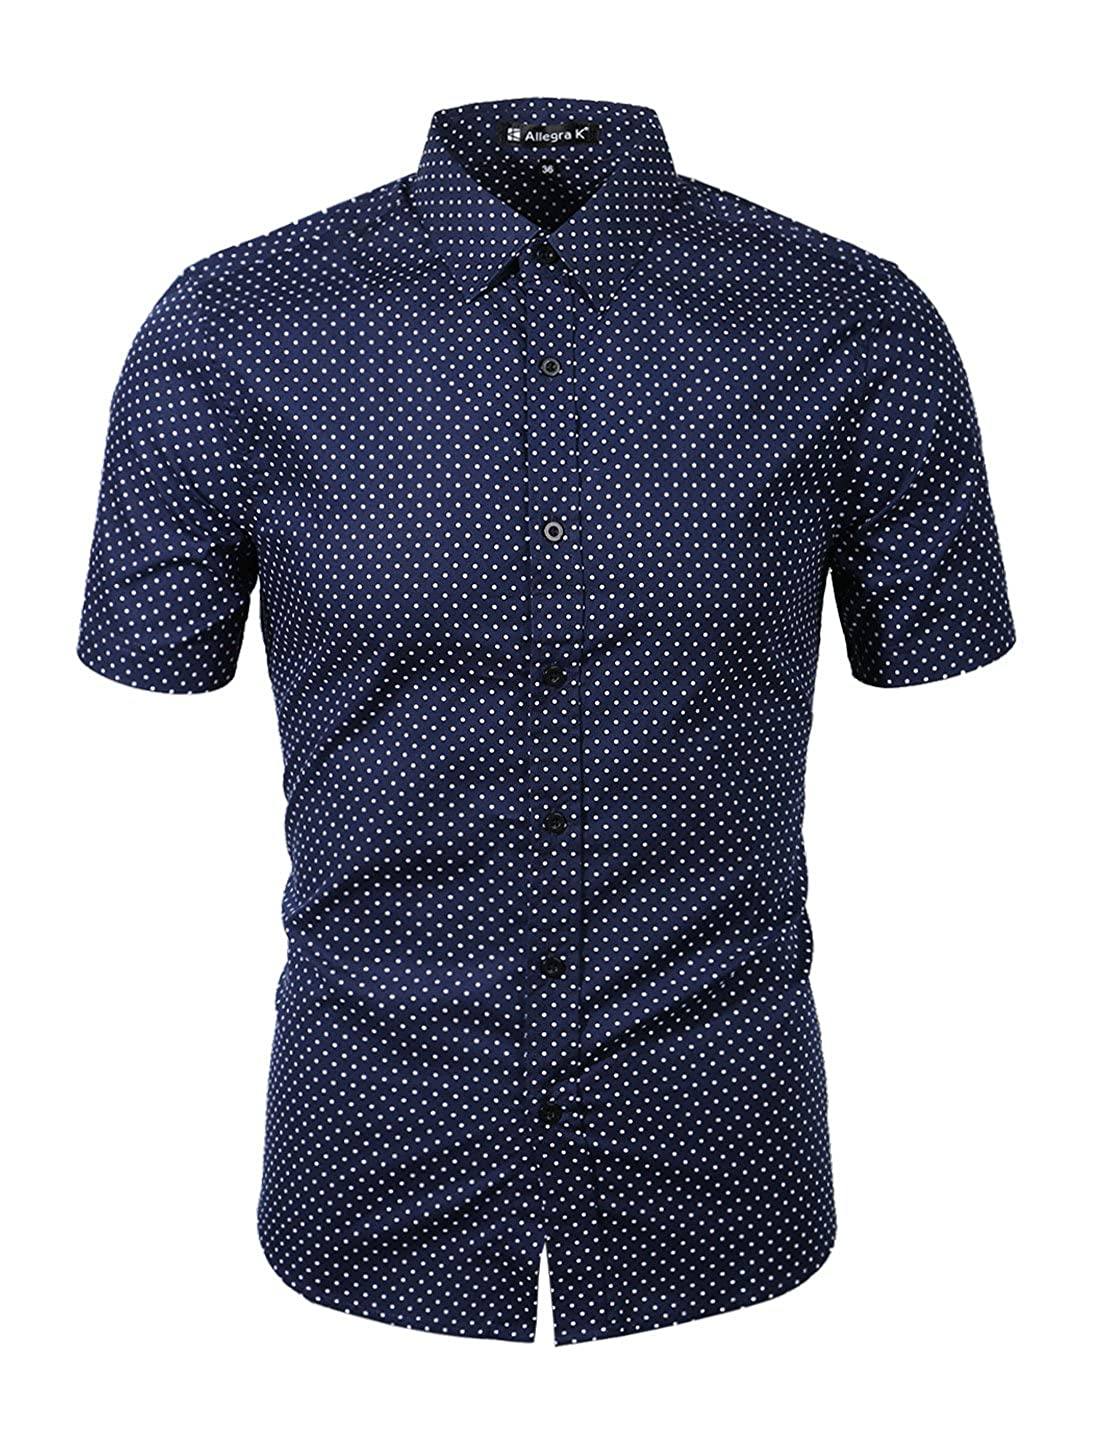 4f011725c uxcell Men Short Sleeves Dots Allover Print Cotton Button Down Shirt at  Amazon Men's Clothing store: